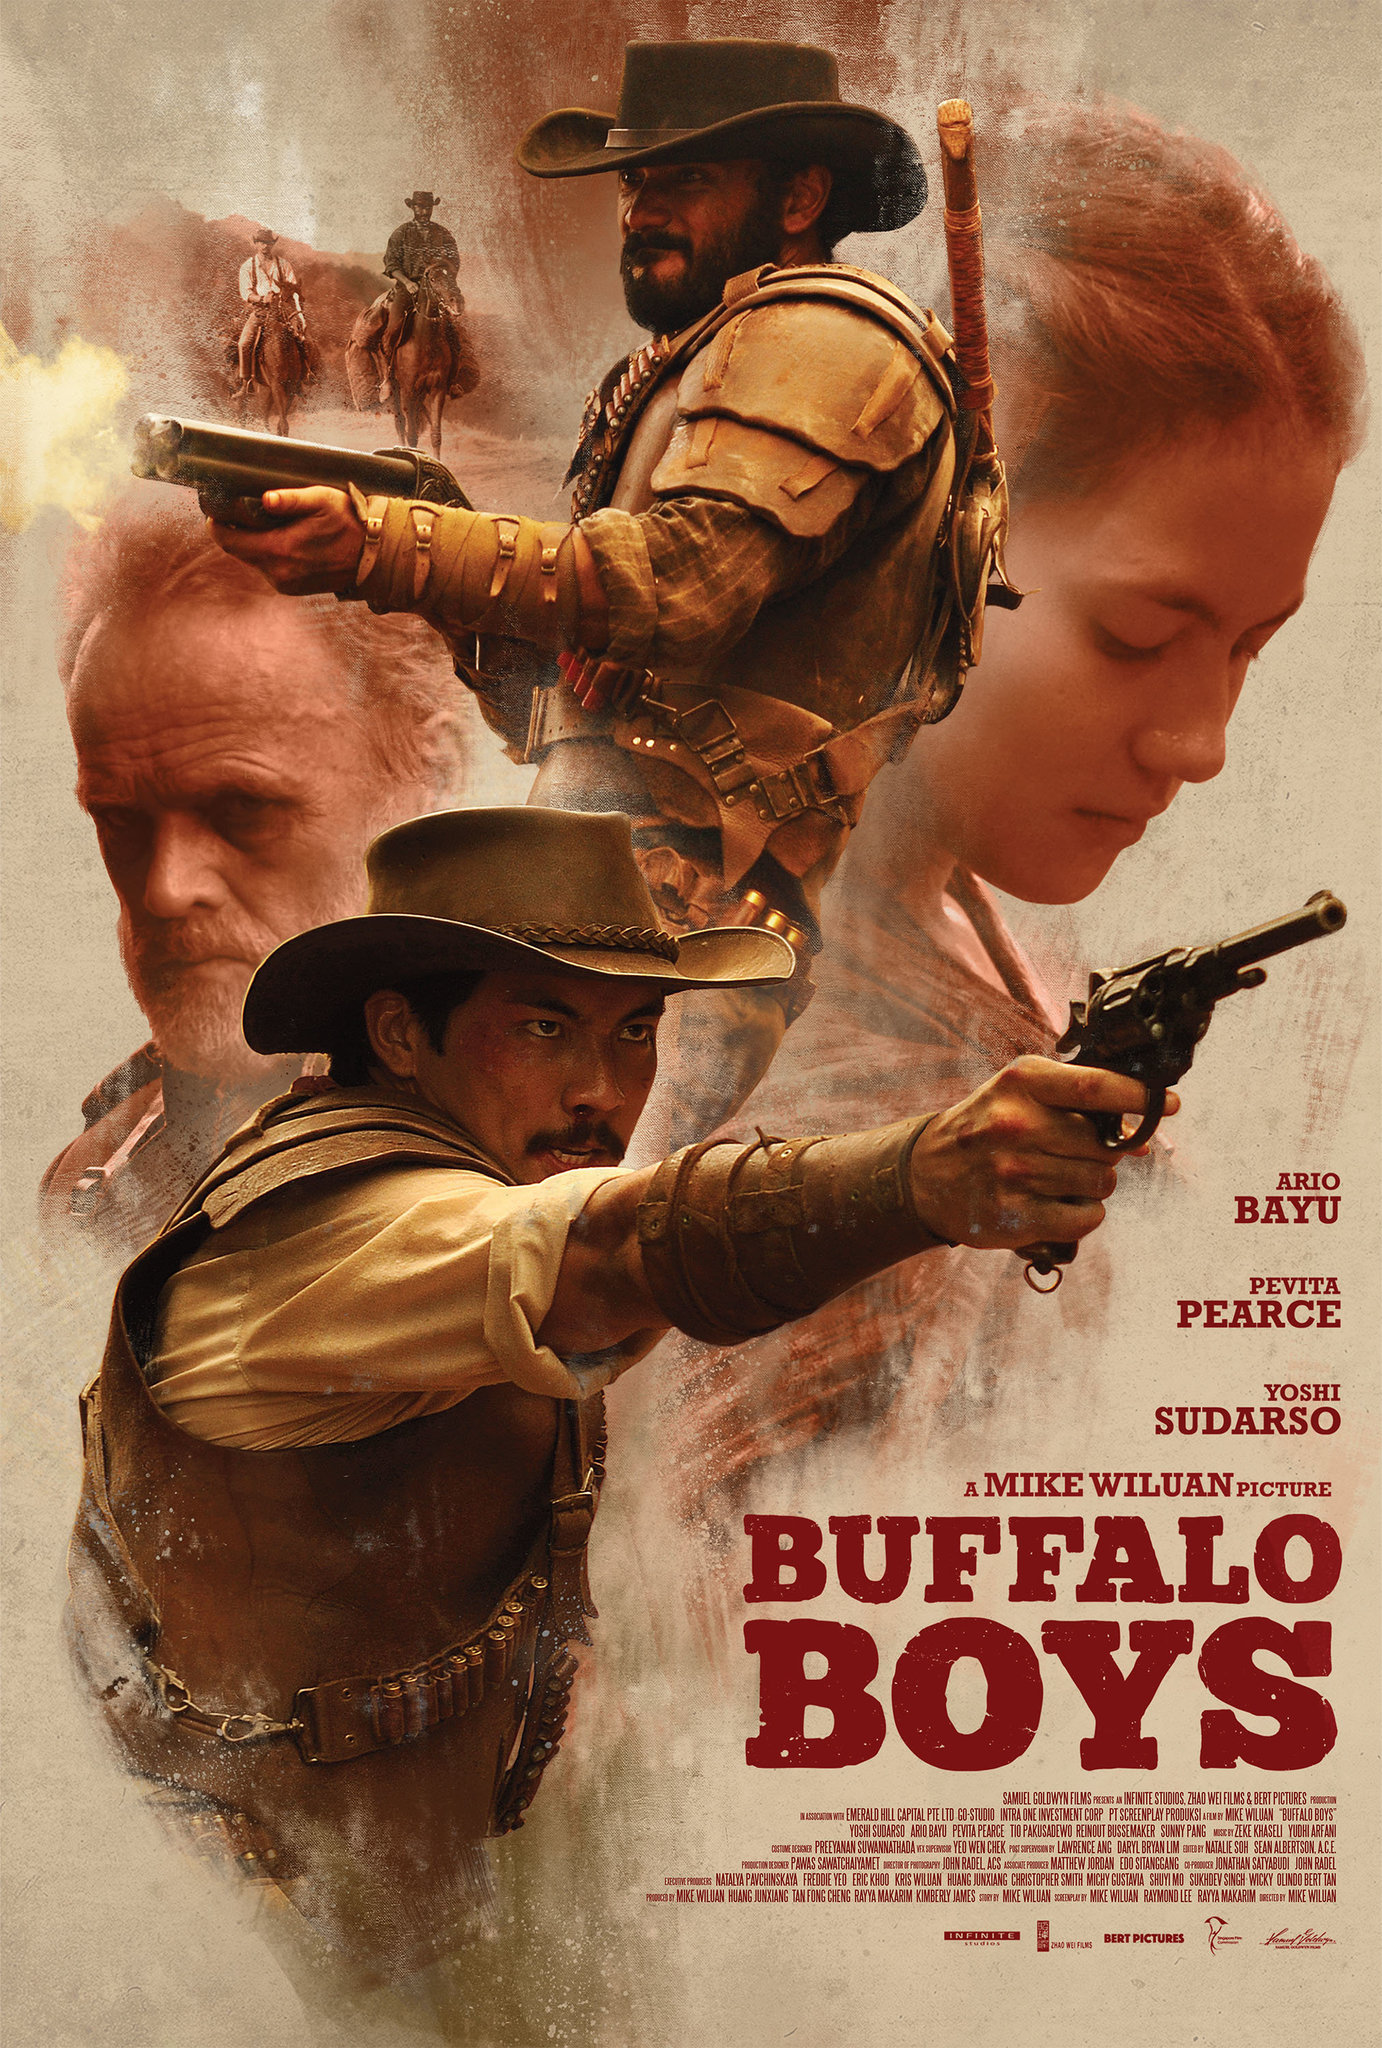 Buffalo Boys: Bringing Asian Actors To The Forefront Of Westerns